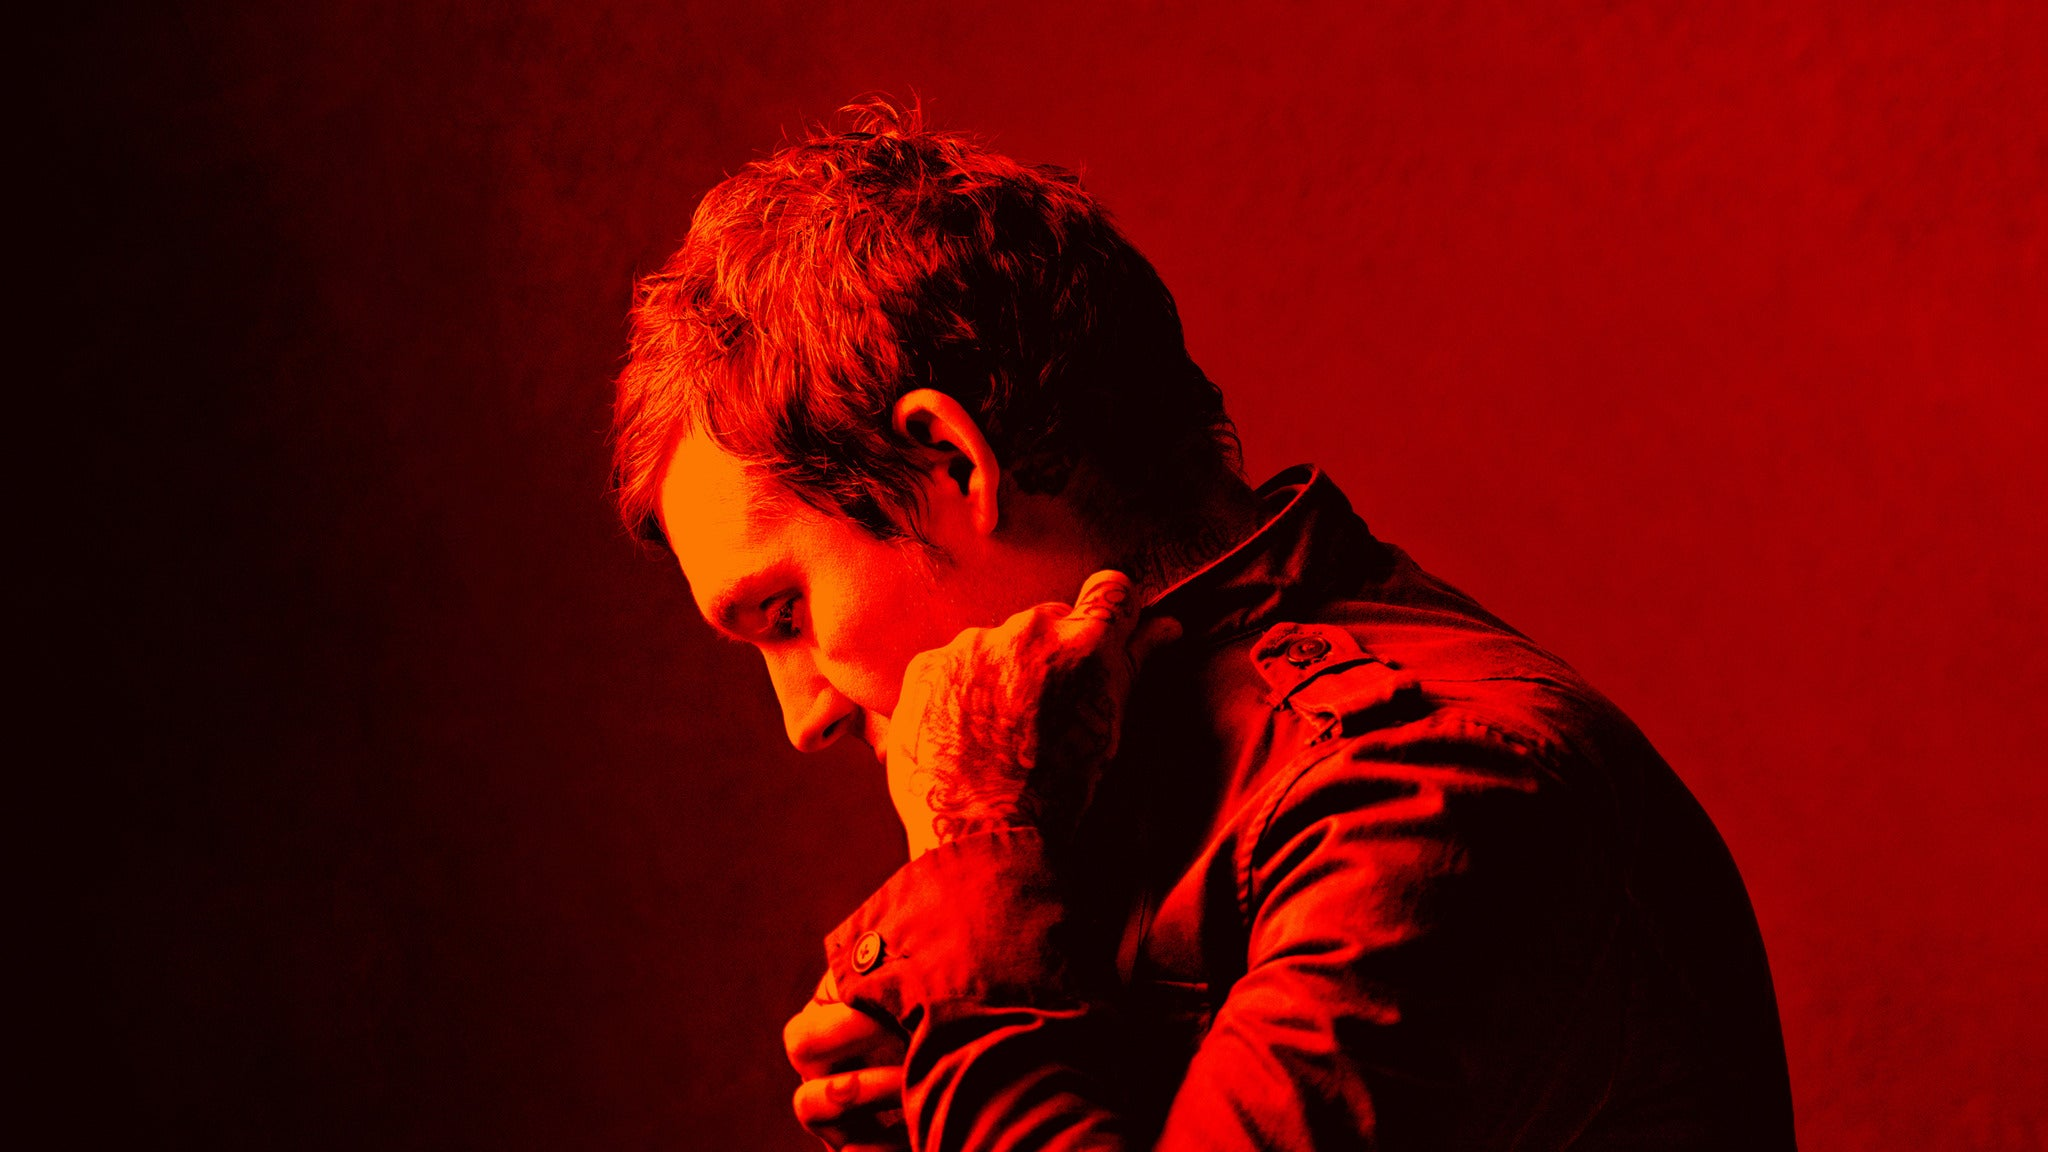 Brian Fallon at The Observatory - Santa Ana